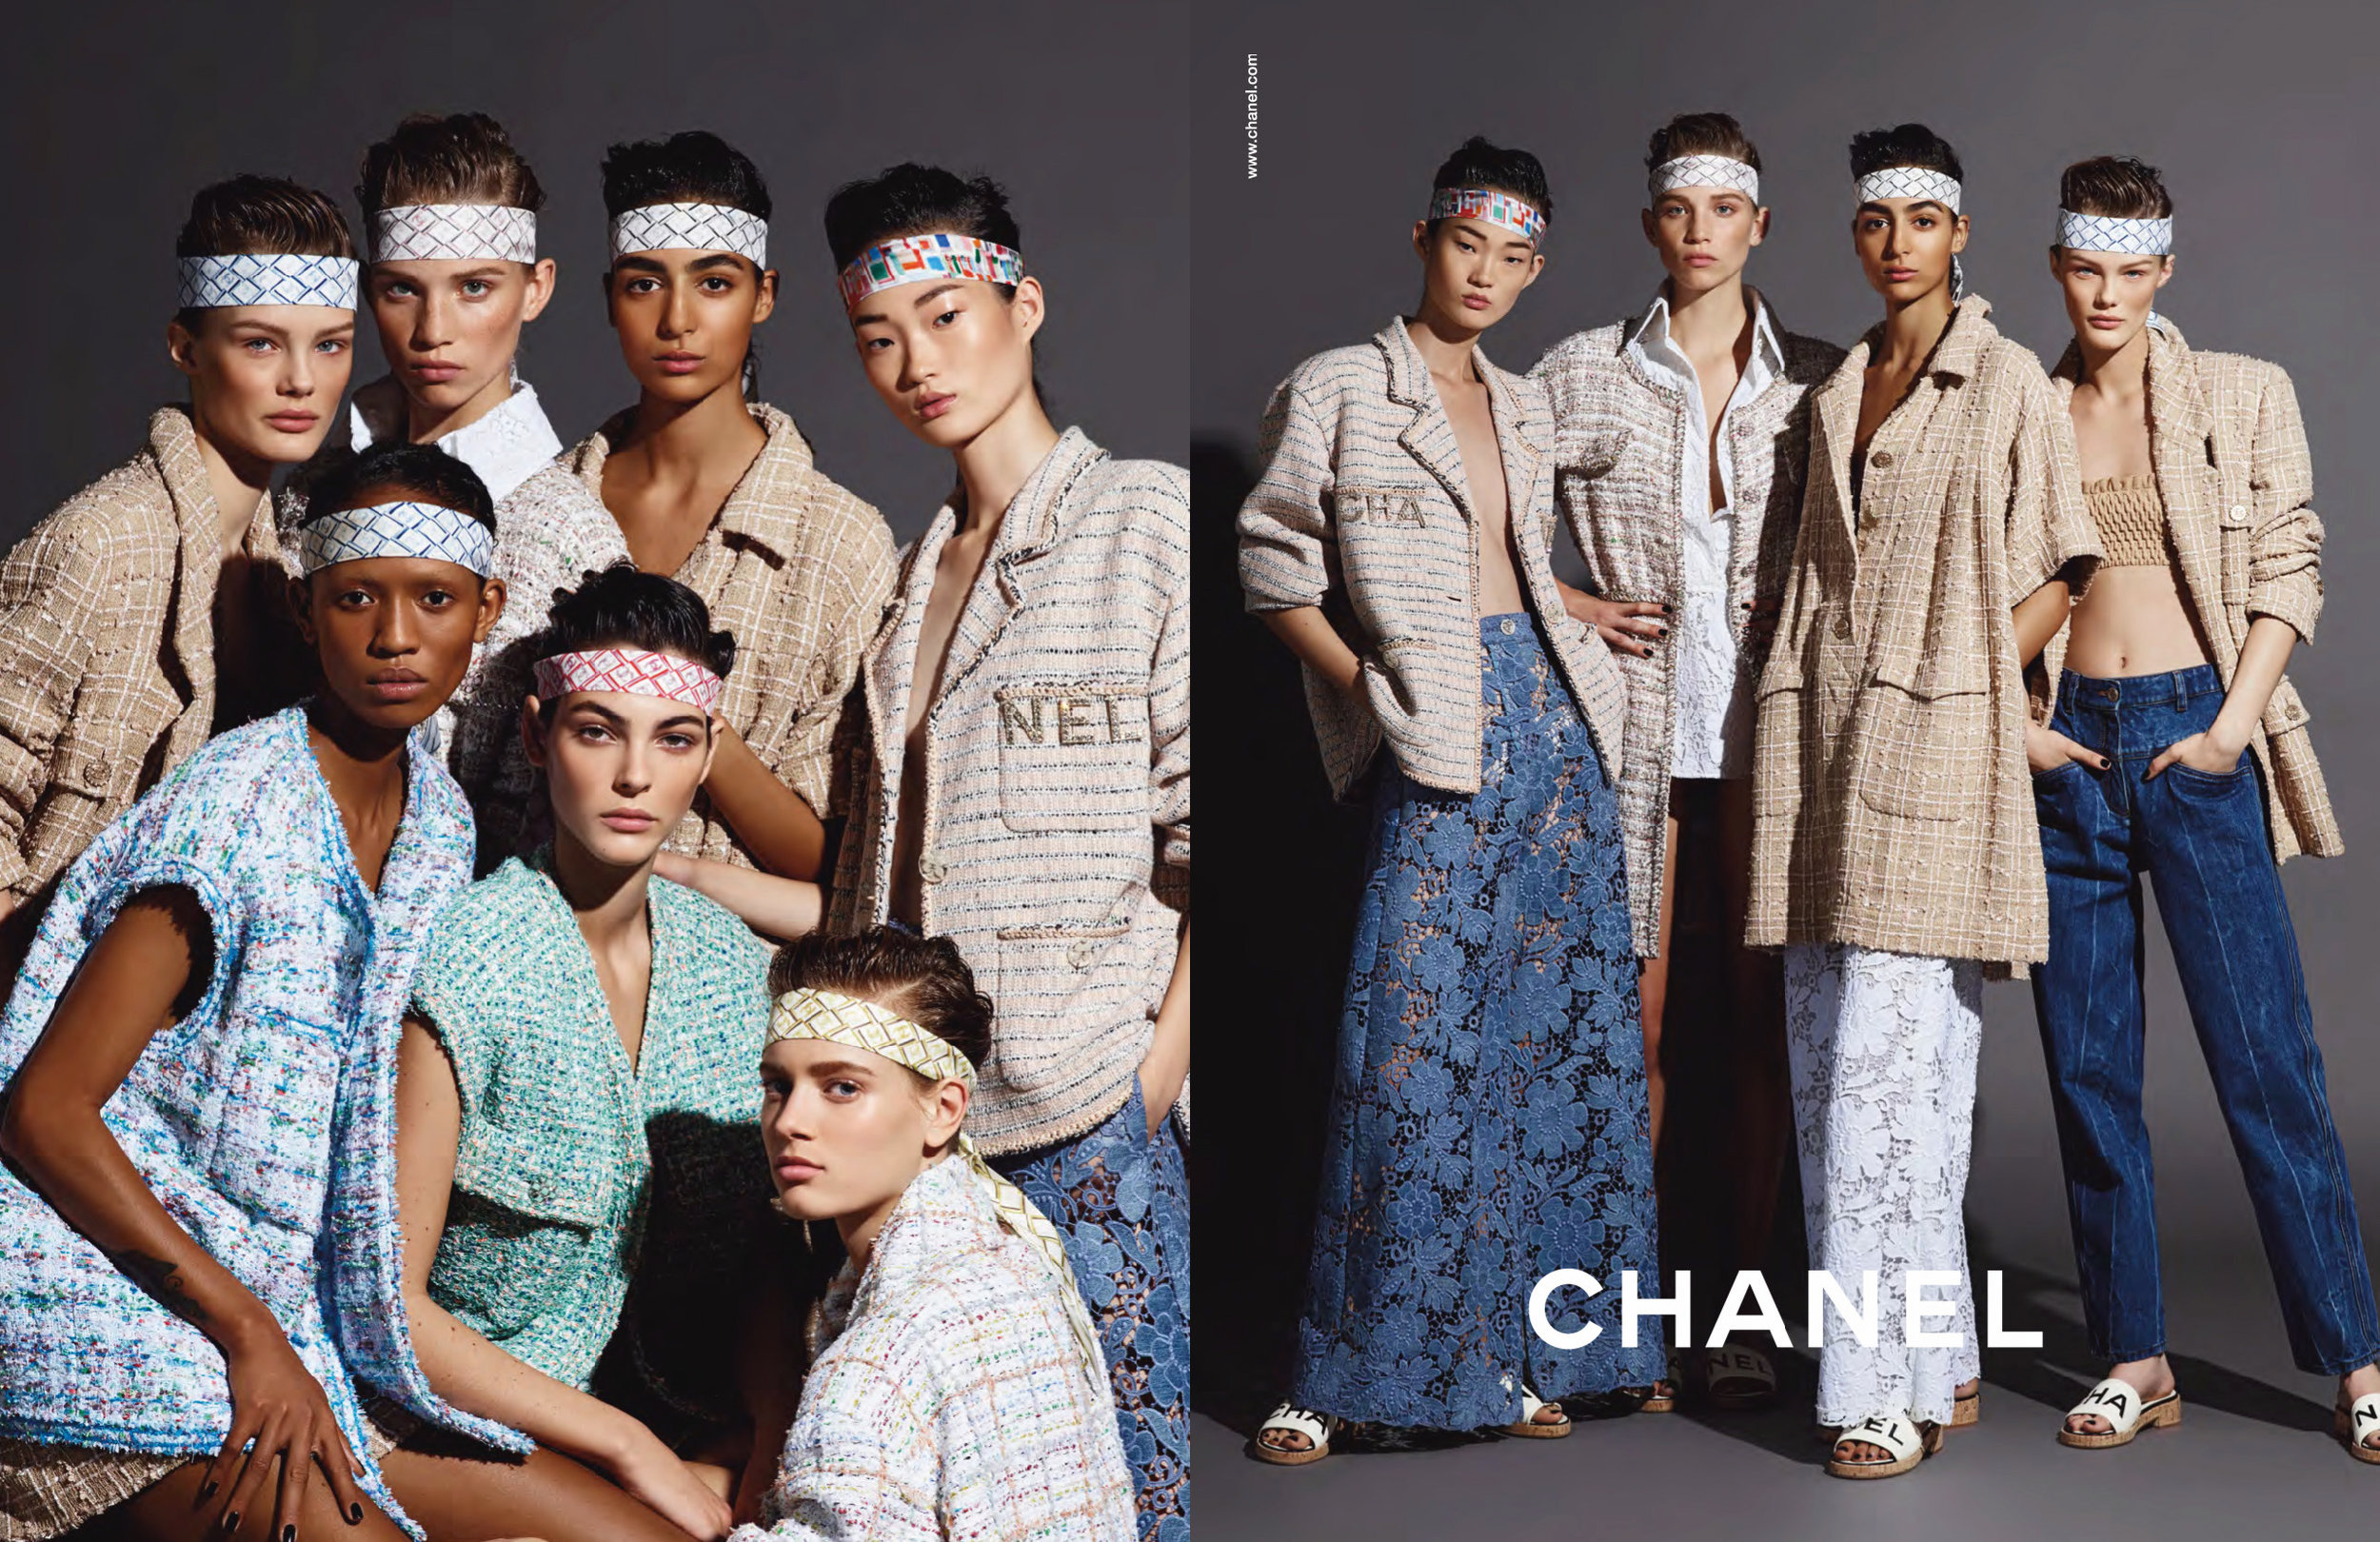 chanel_spring_2019_campaign7.jpg